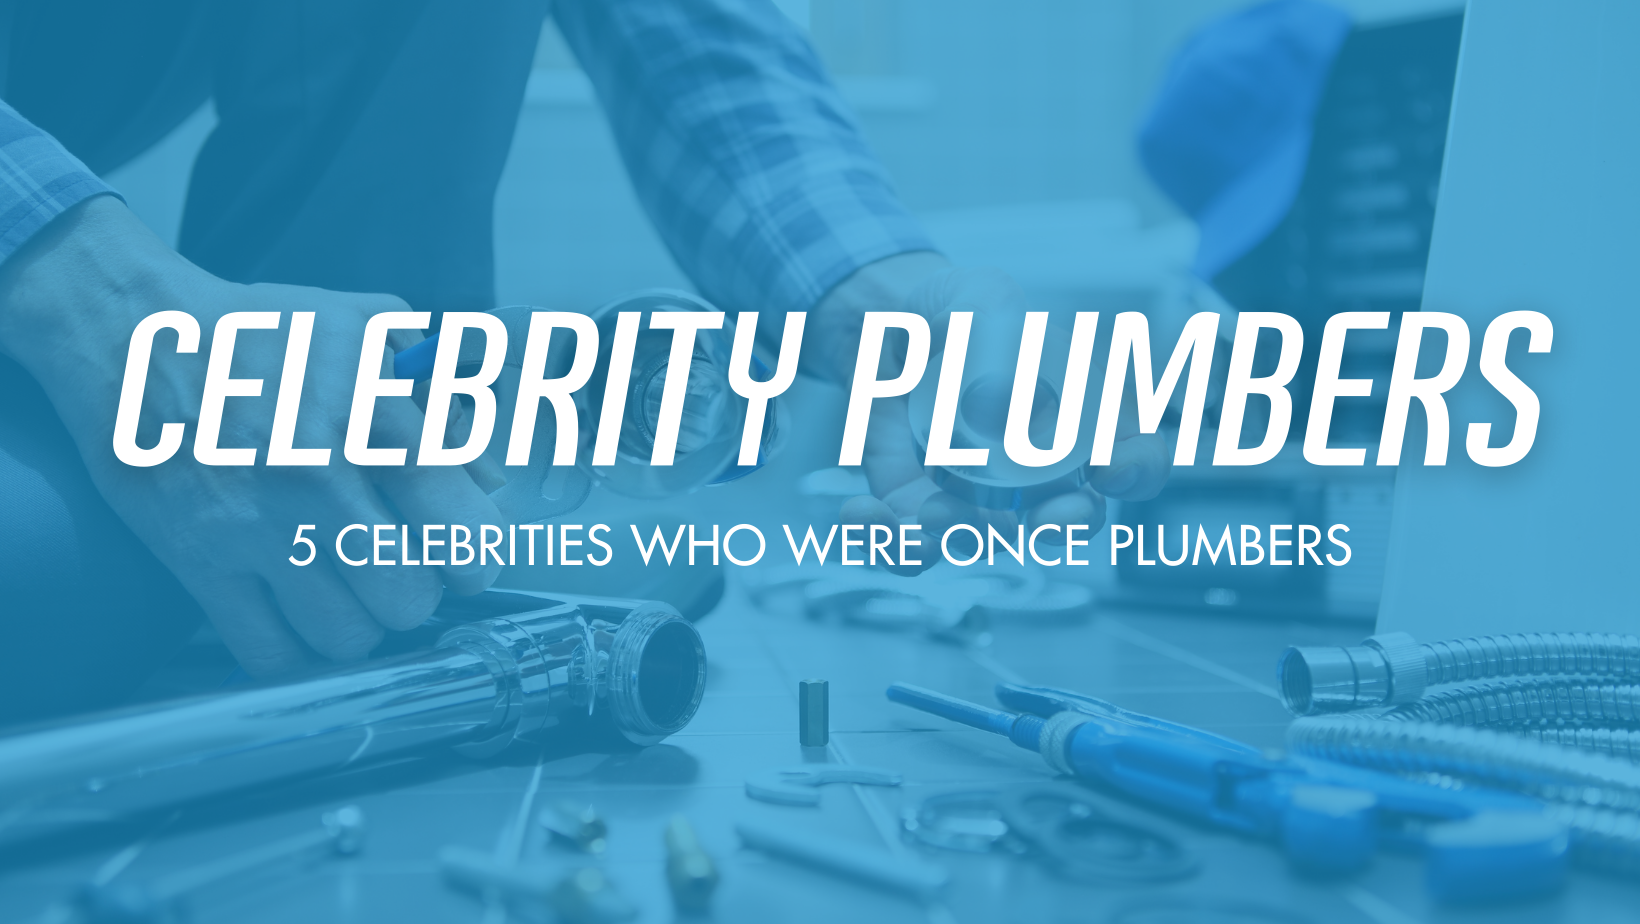 5 Celebrities Who Once Were Plumbers